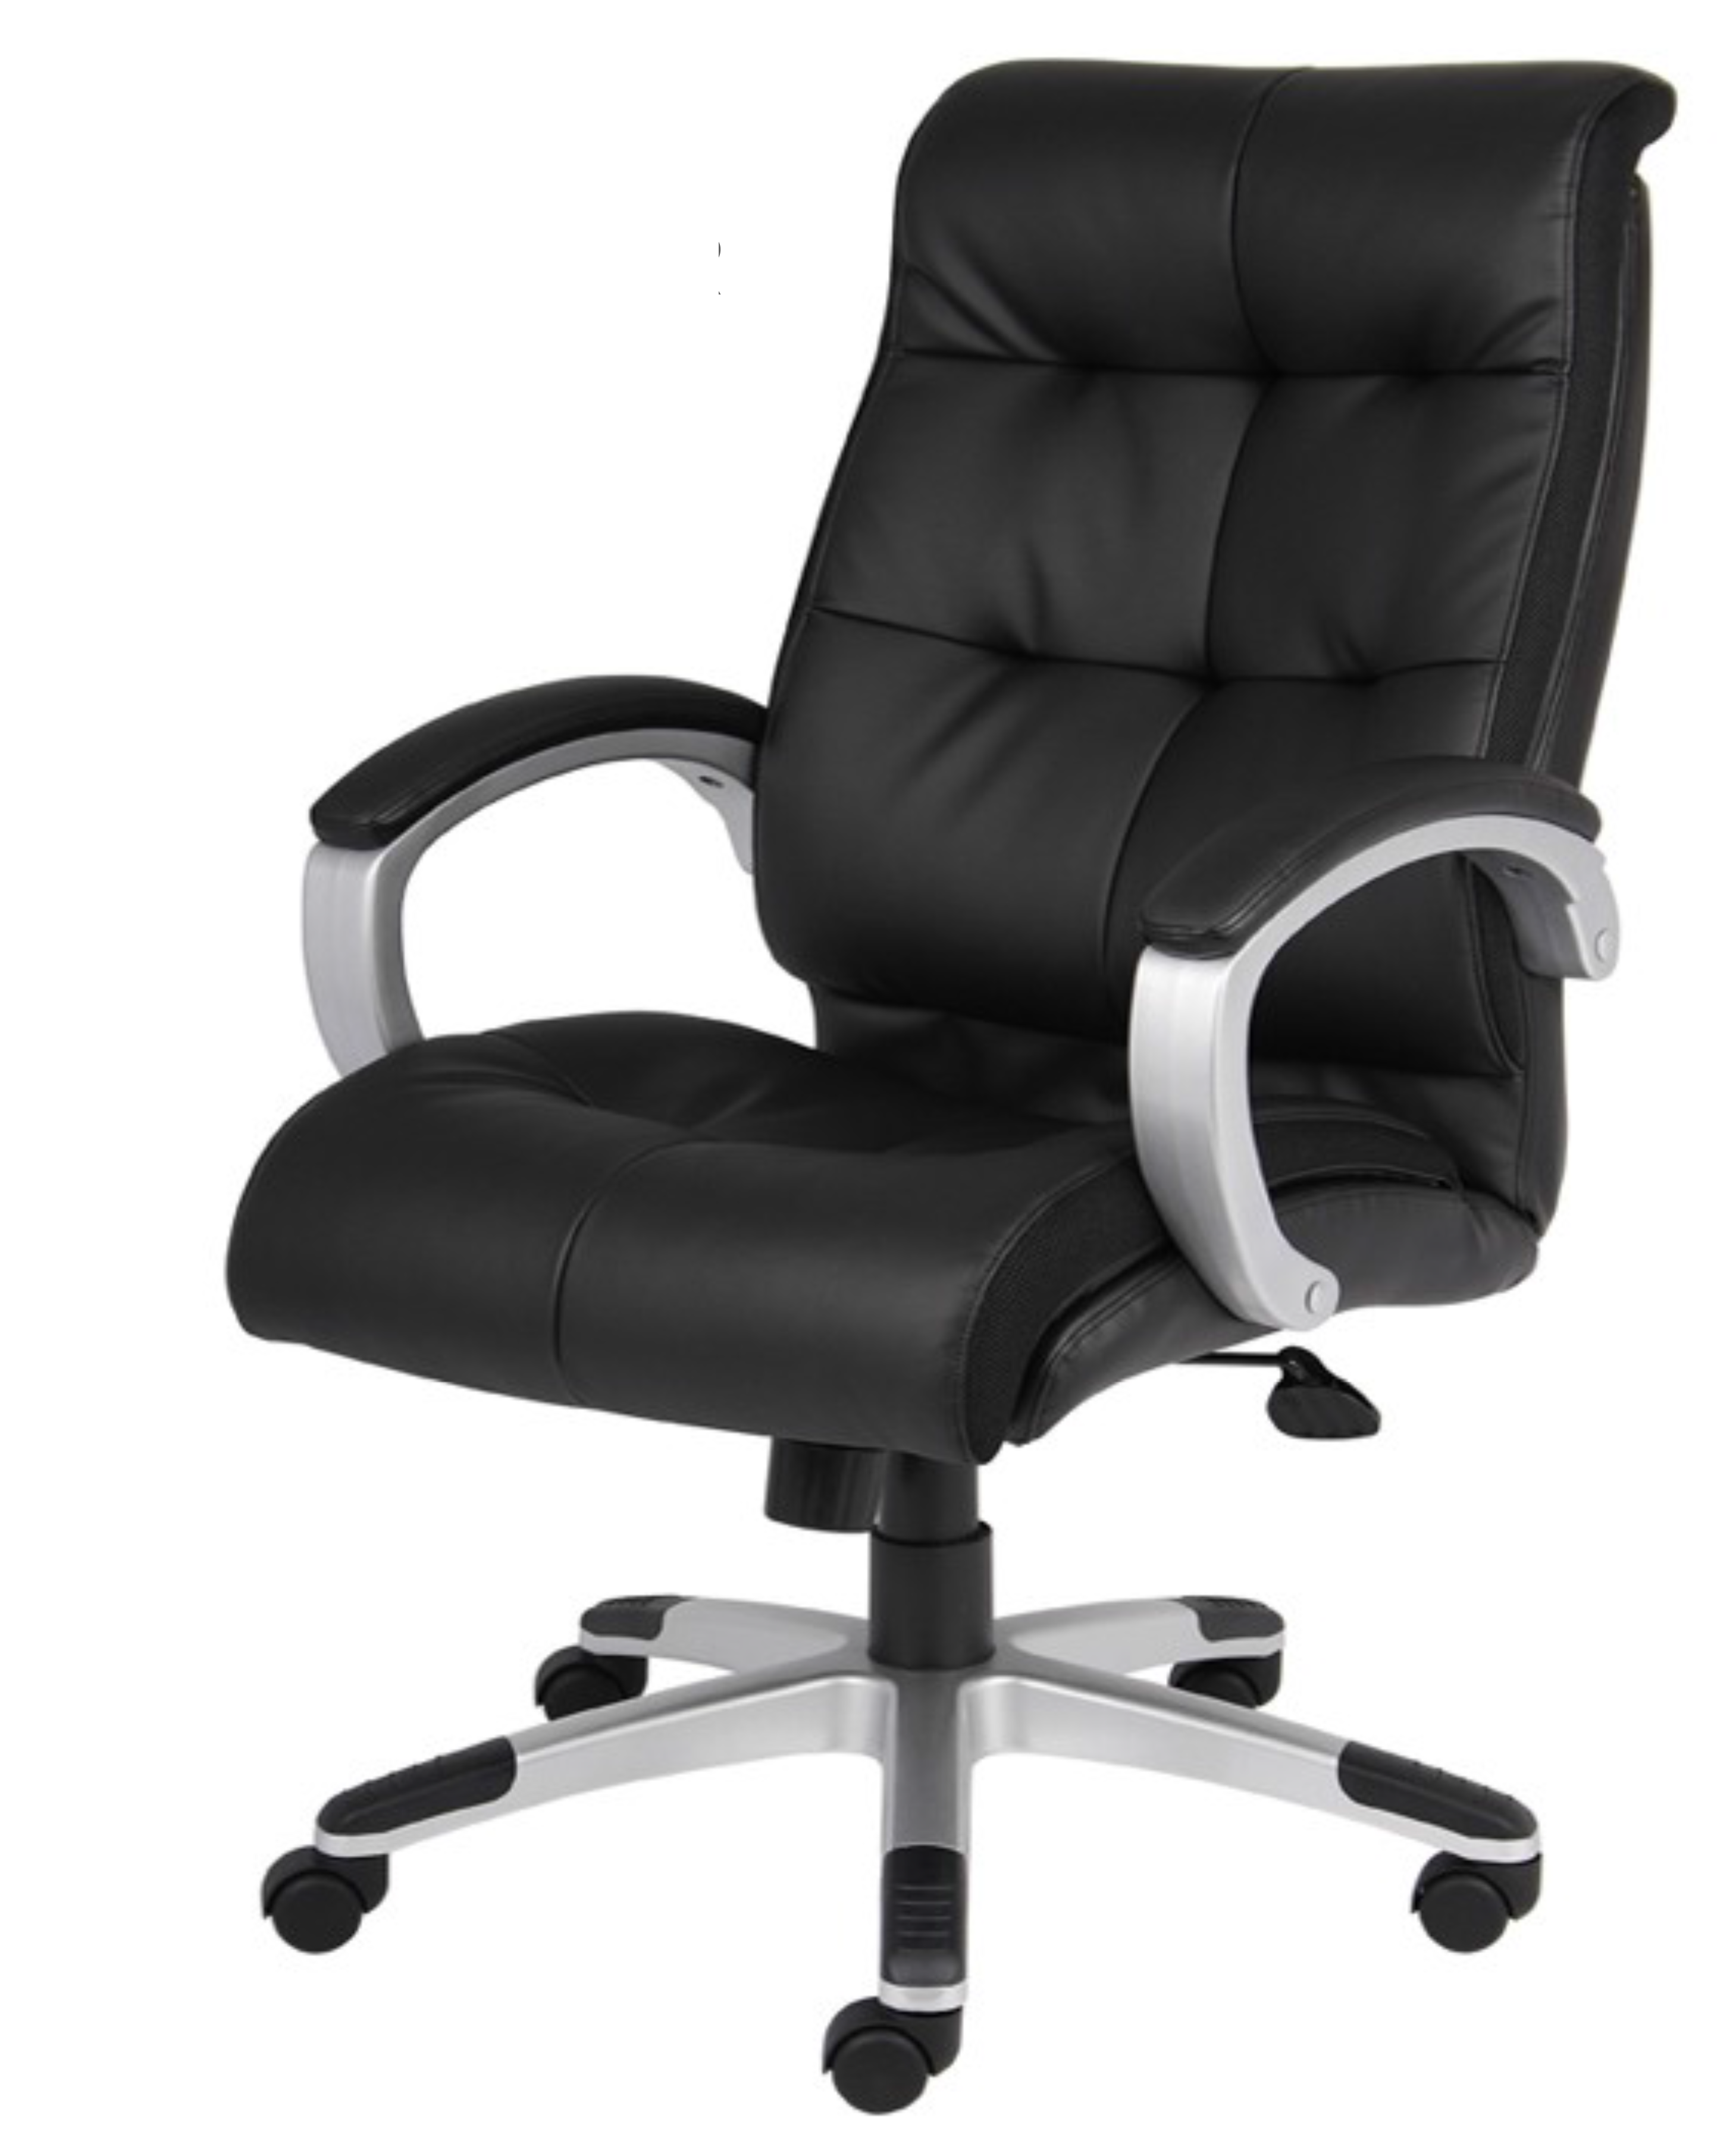 high-back black executive chair with upholstered arm pads, chrome